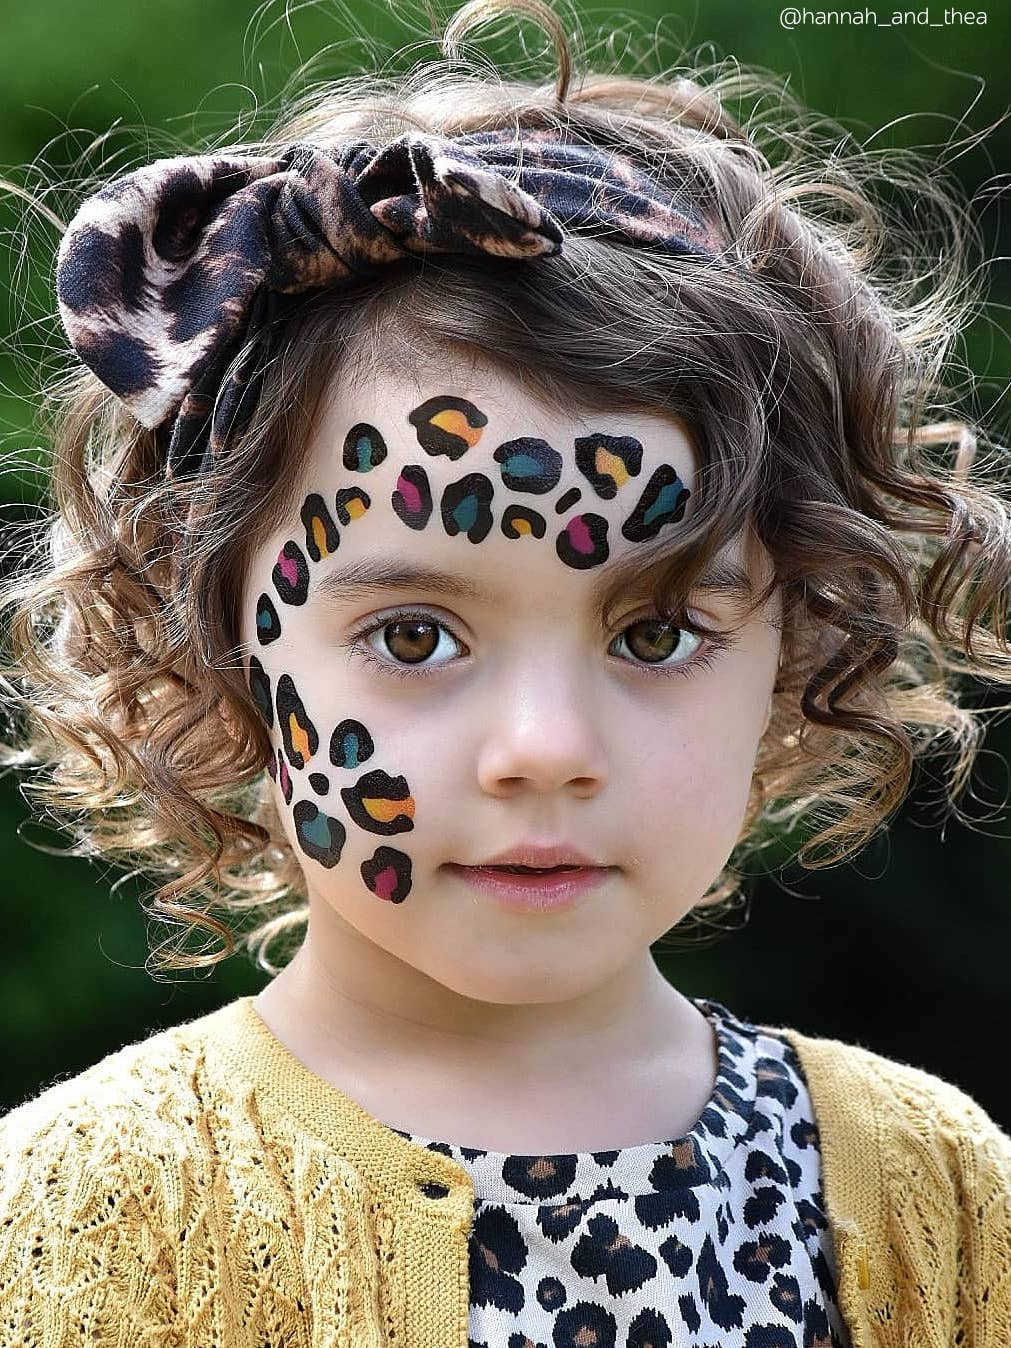 Temporary tattoo Leopard print. Big tattoo sheet to create realistic rainbow cheetah pattern skin effect.